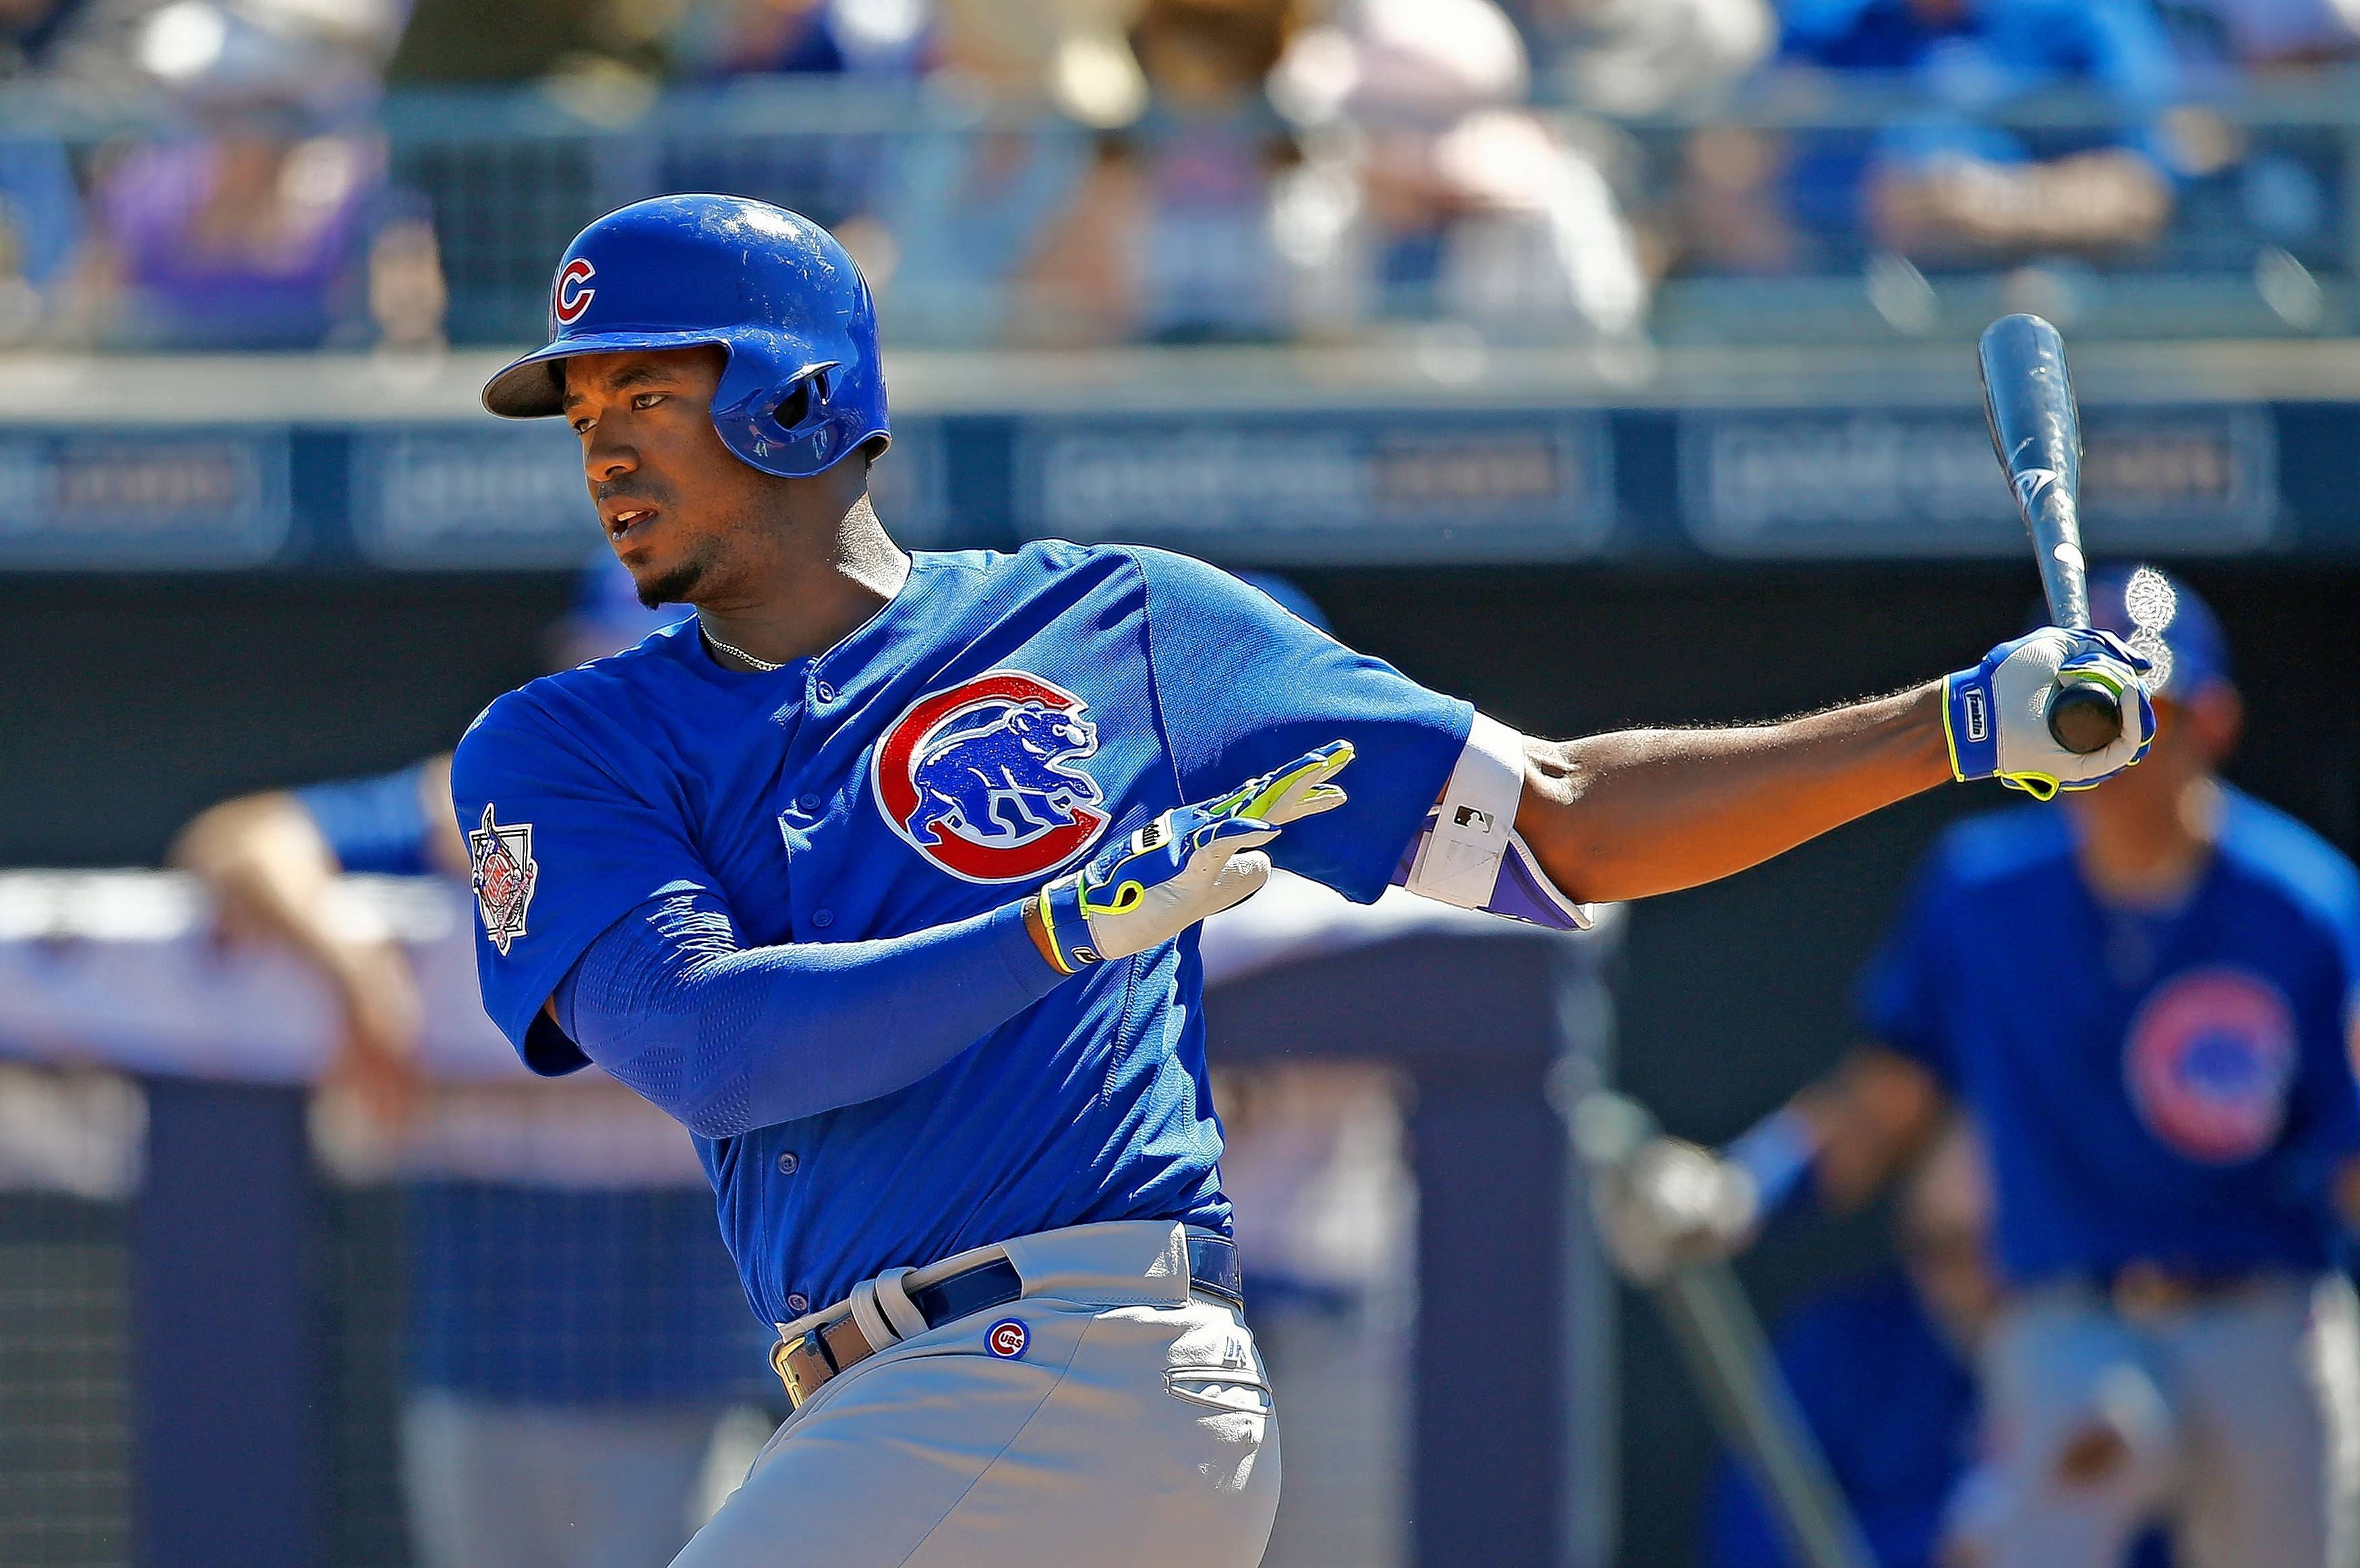 Former Chicago Cubs right fielder Eloy Jimenez, now in the White Sox organization, takes a swing against the Seattle Mariners during the second inning of a spring training baseball game Friday, March 10, 2017, in Peoria, Ariz. The Mariners defeated the Cubs 11-10. (AP Photo/Ross D. Franklin)